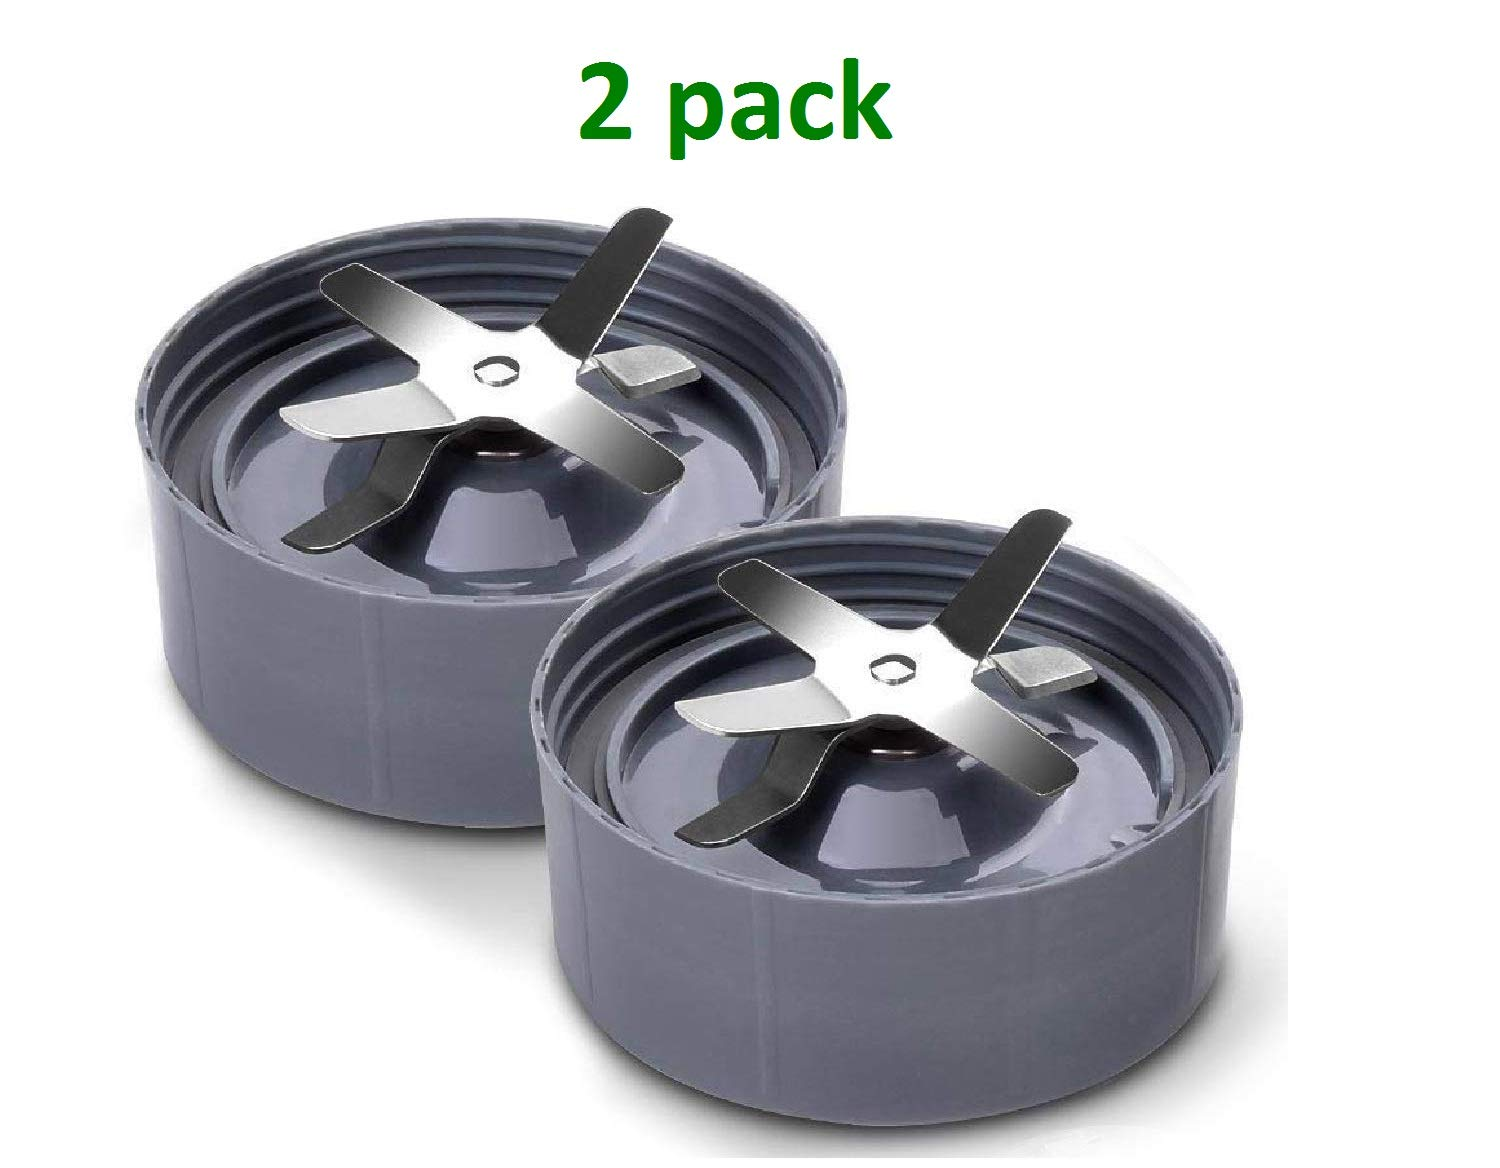 Fits Nutribullet 600W//900W Models Pack of 2, Grey NutriBullet Replacement 6fin Extractor Blade Premium Replacement Parts /& Accessories